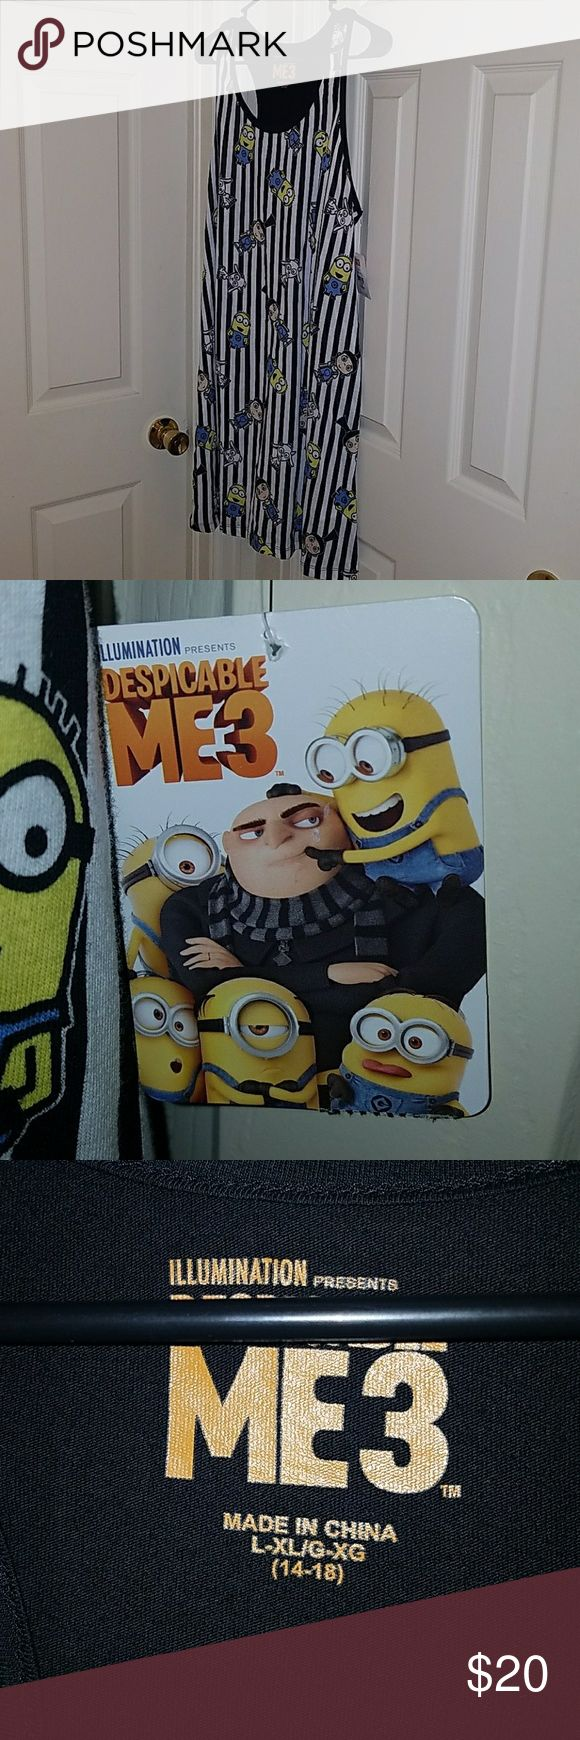 Despicable Me 3 Nightgown Minions Margo Goat Brand New w Tags Despicable Me 3 Nightgown Size L/XL (14-18) Perfect for Christmas Holidays Illumination Intimates & Sleepwear